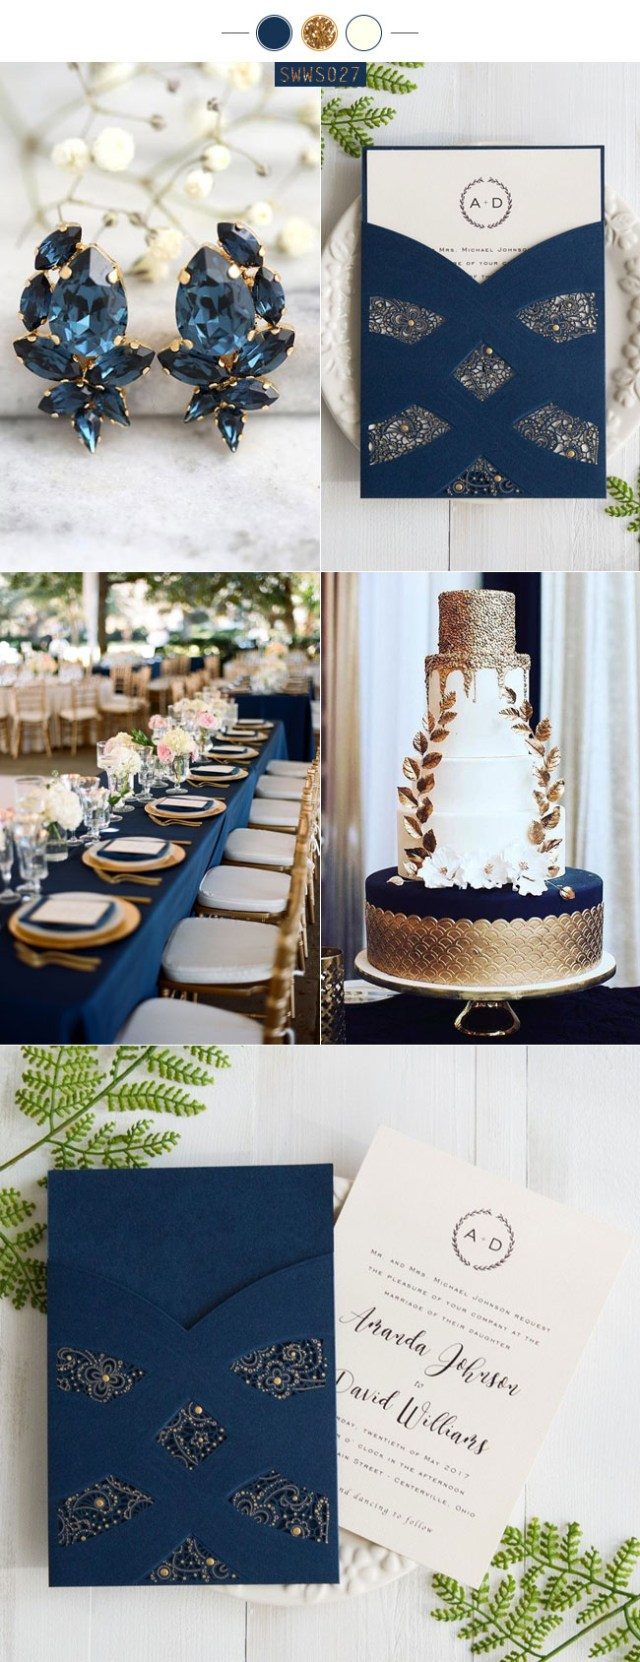 Navy Blue And Gold Wedding Invitations The Best 9 Navy Blue Wedding Invitations From Stylishwedd Stylish